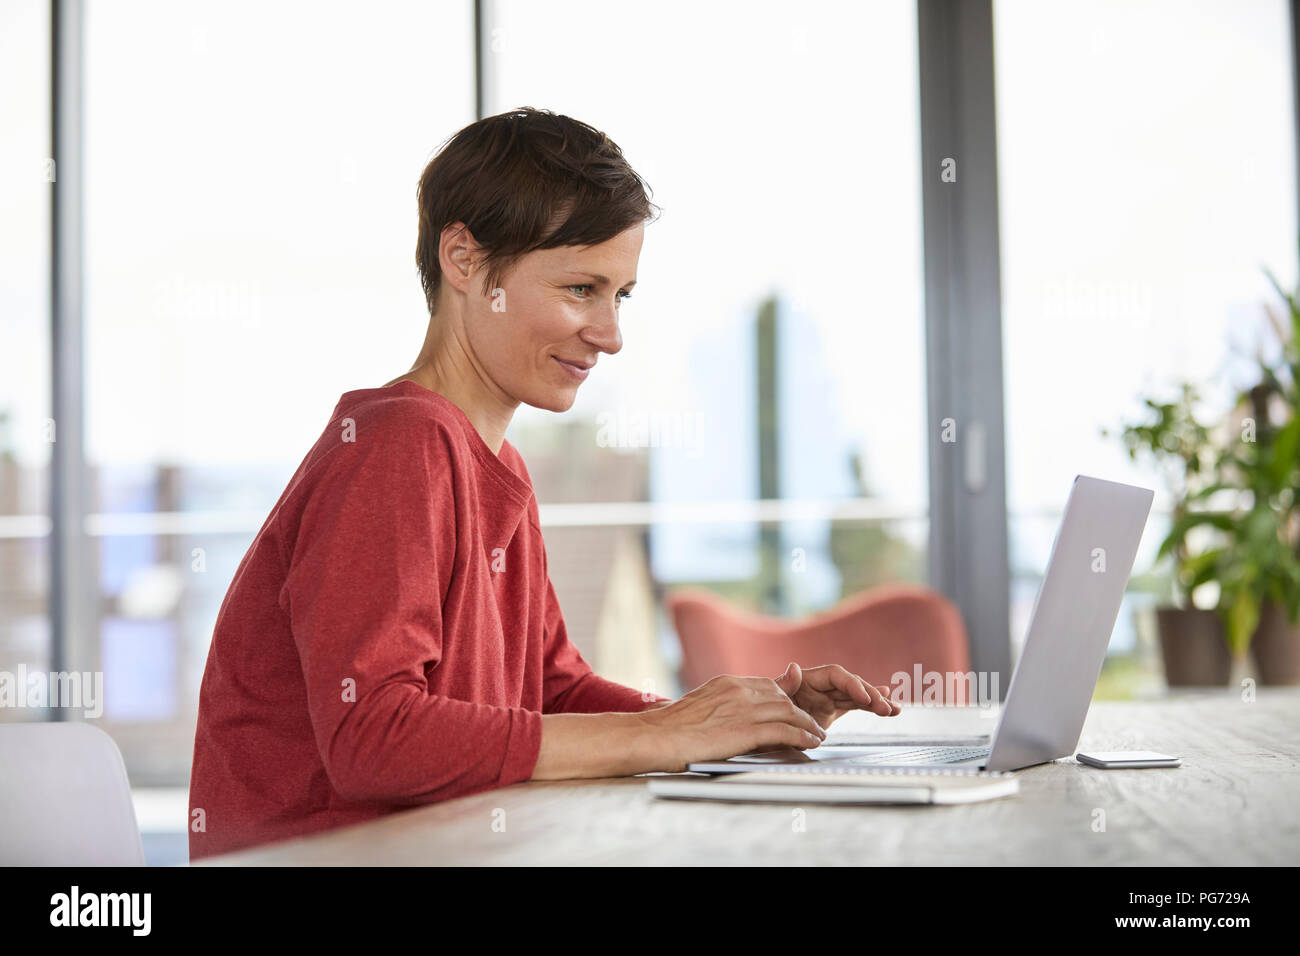 Smiling woman sitting at table at home using laptop Photo Stock